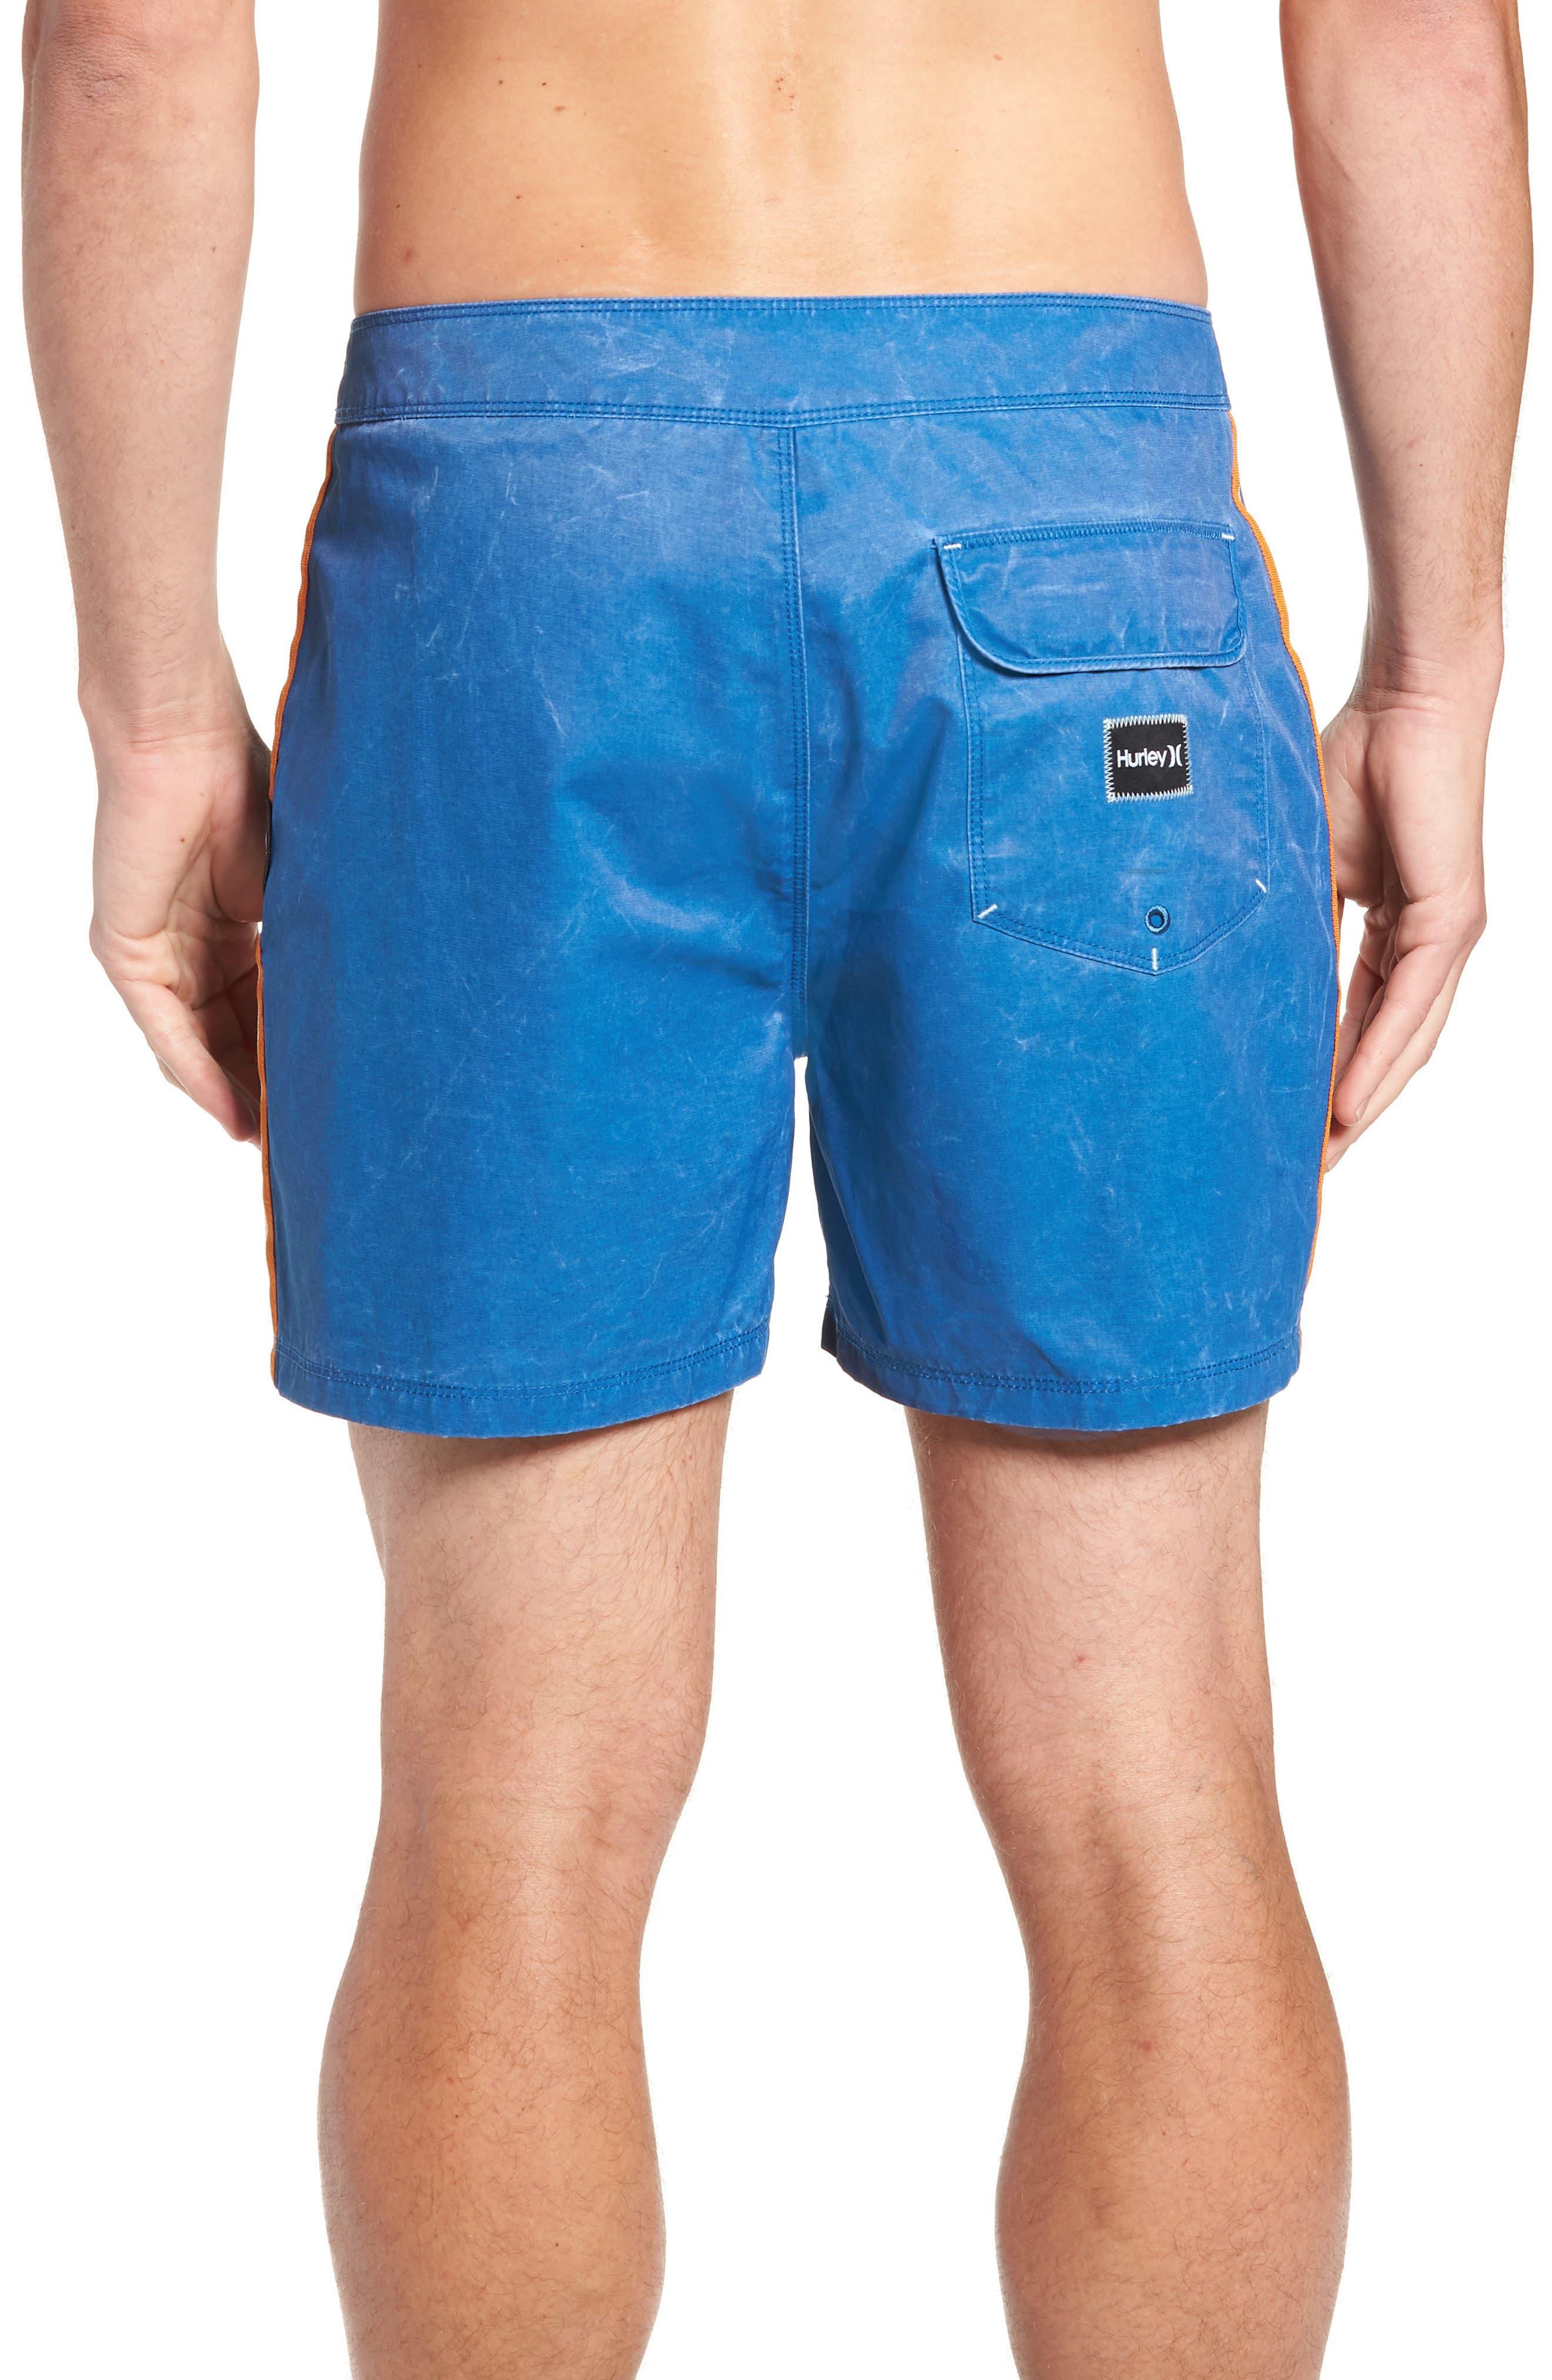 Navigation Board Shorts,                             Alternate thumbnail 2, color,                             474